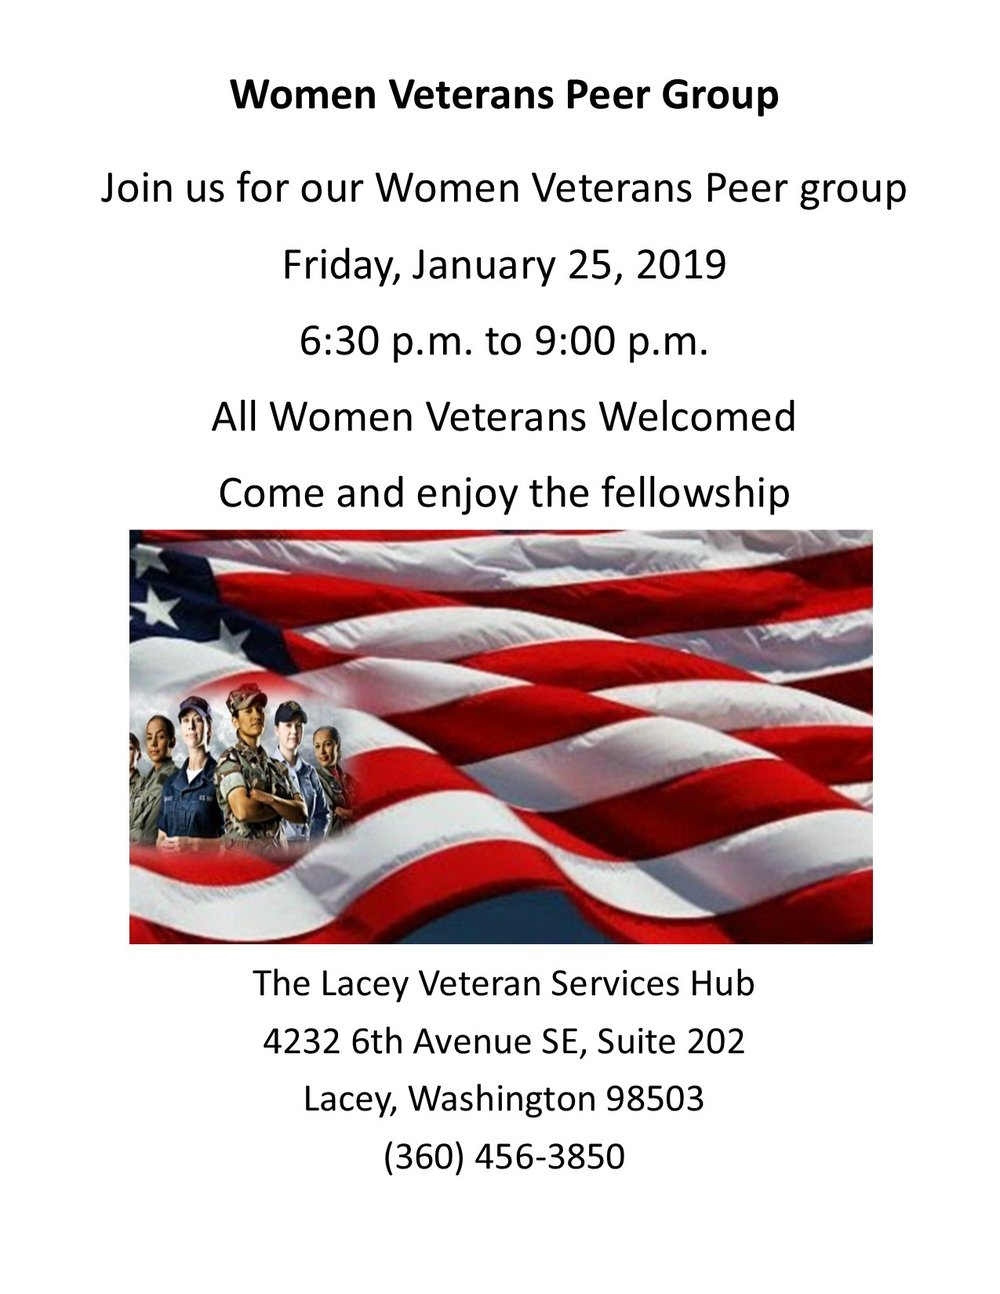 Women Veterans Peer Group Flyer 2090125.jpg